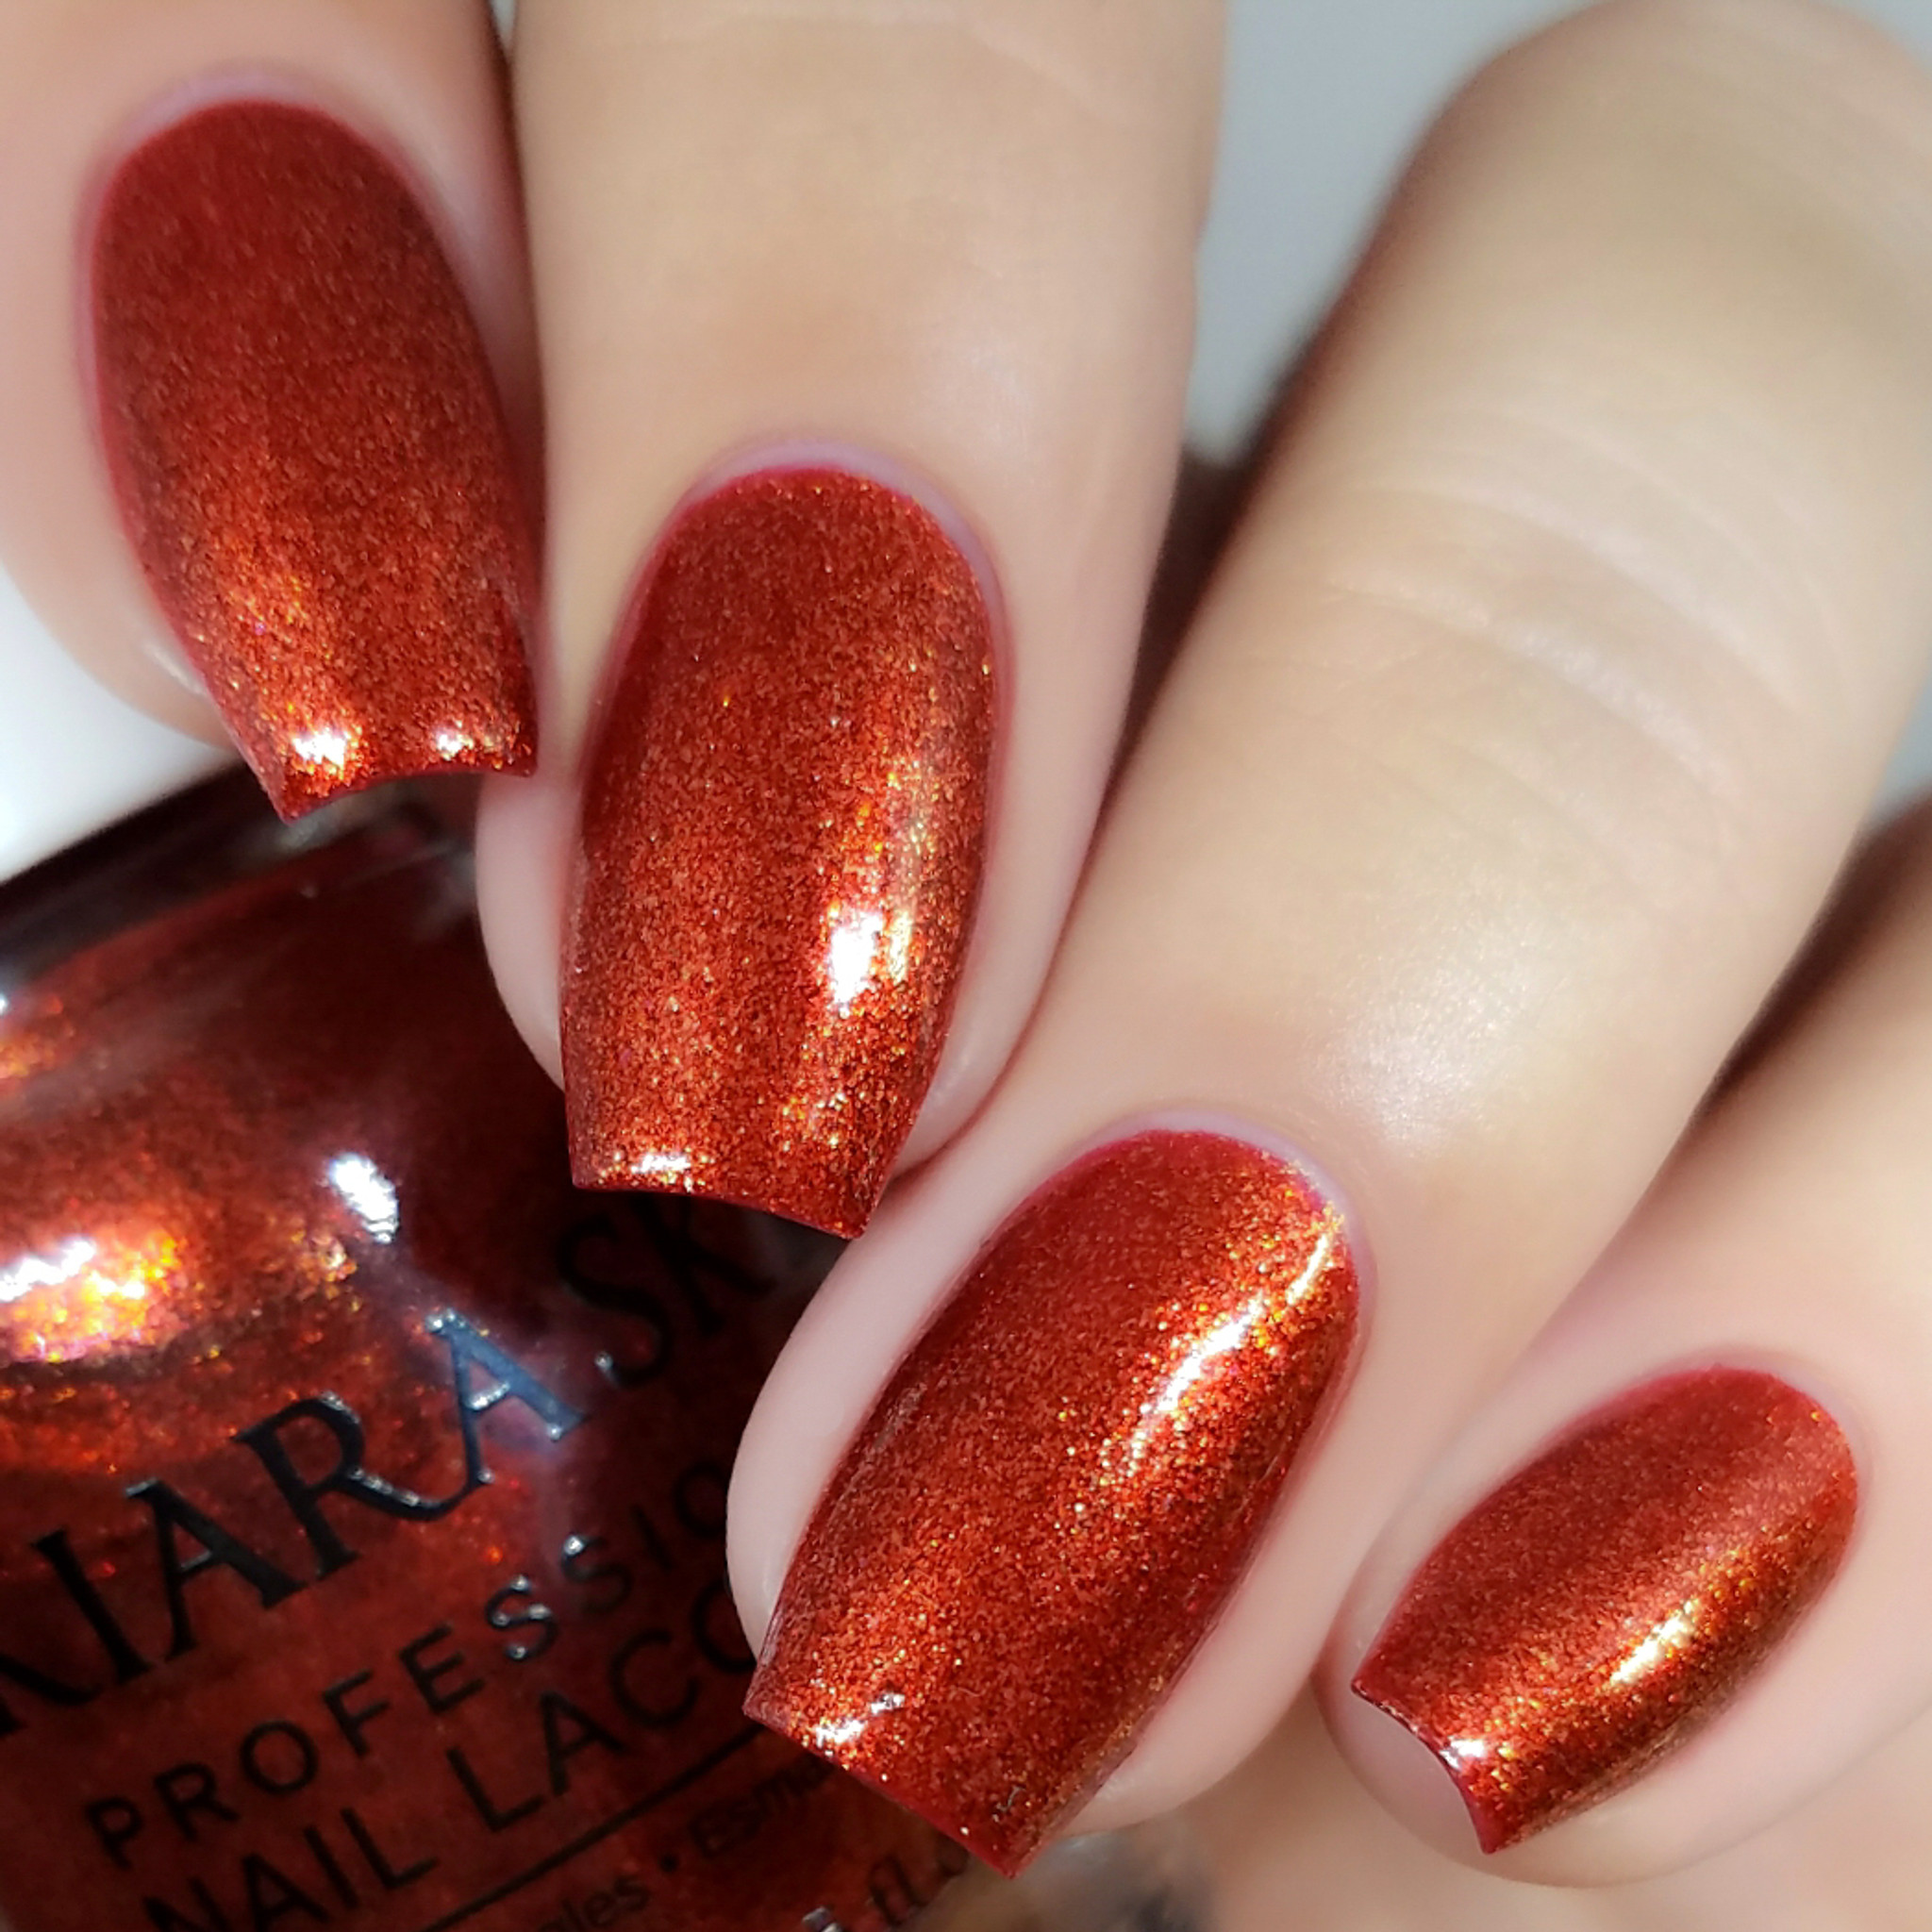 Frosted Pomegranate | Red Nail Lacquer | Kiara Sky